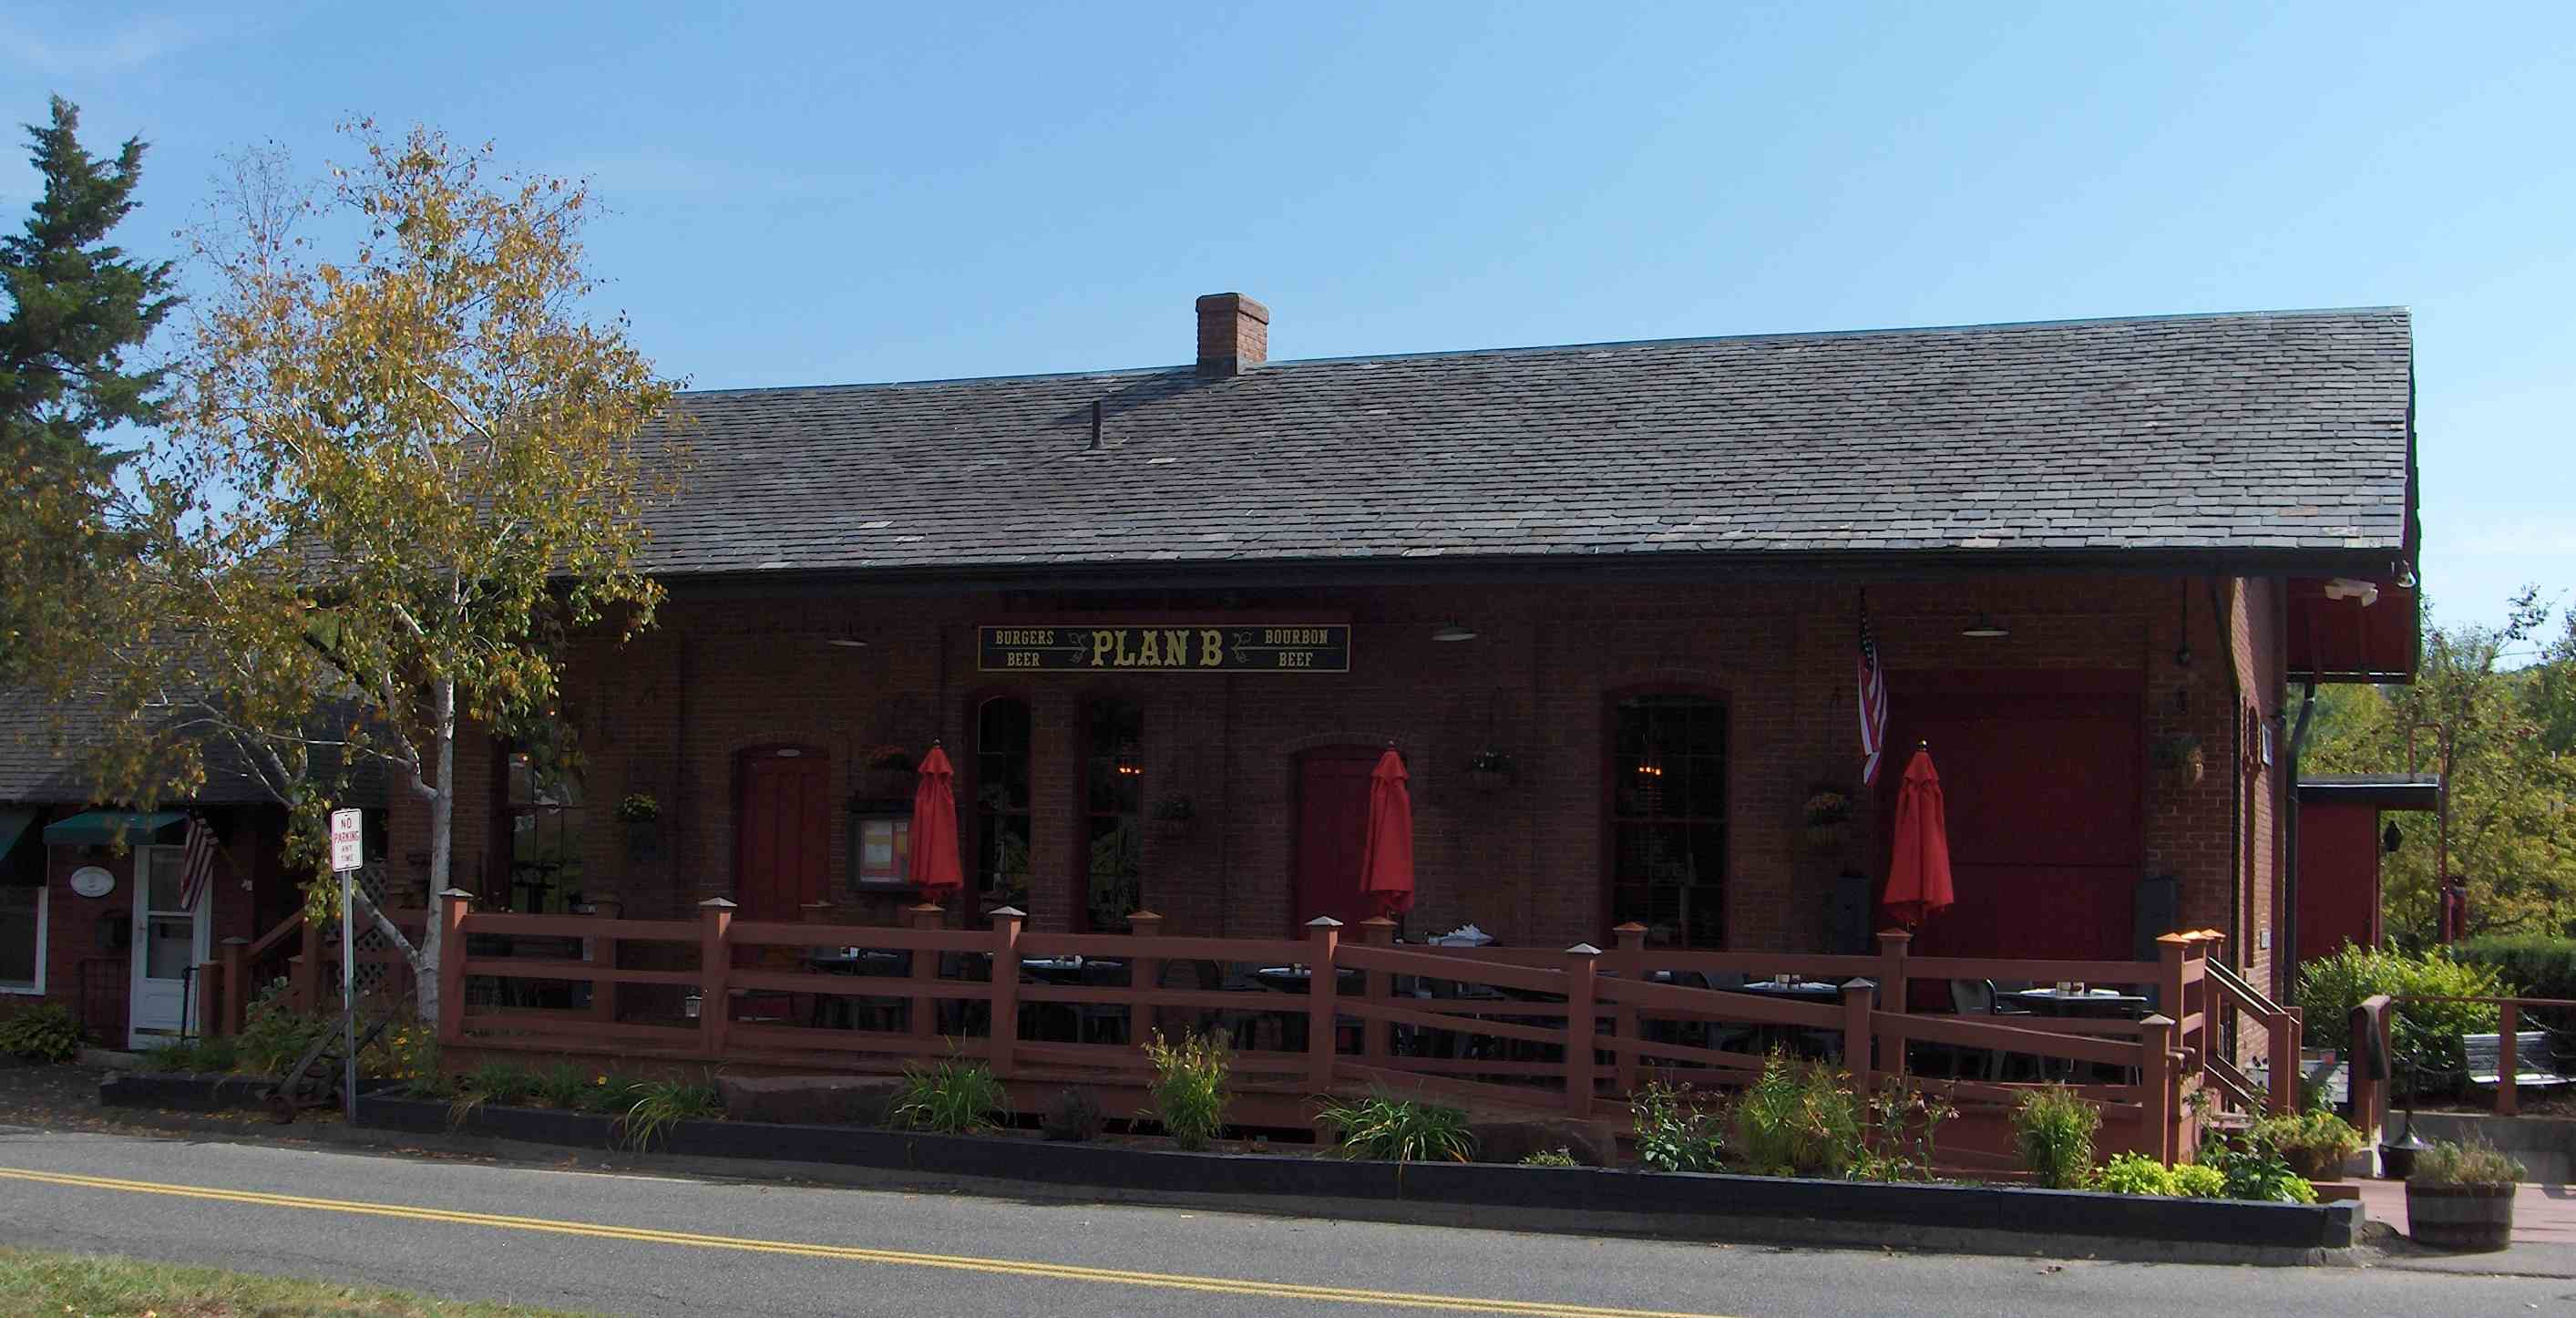 Simsbury Railroad Depot - Wikipedia on warehouse house plans, school house plans, hotel house plans, mill house plans, bank house plans, round barn house plans, library house plans, colonial house house plans, lookout tower house plans, hunting lodge house plans, church house plans,